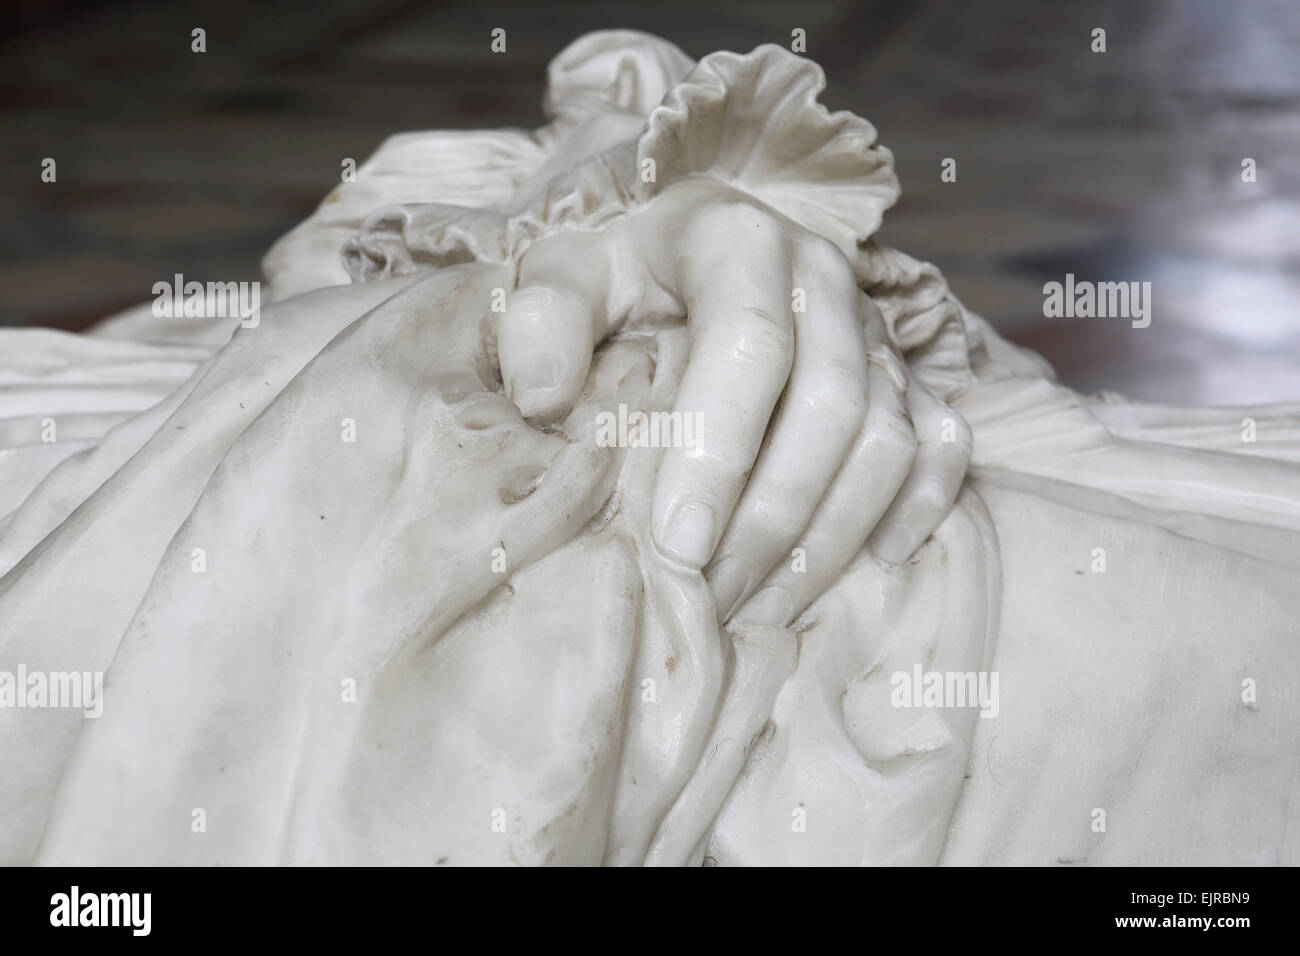 Hands on a marble memorial to William Connor Magee (1821 - 1891) at the cathedral in Peterborough, United Kingdom. - Stock Image